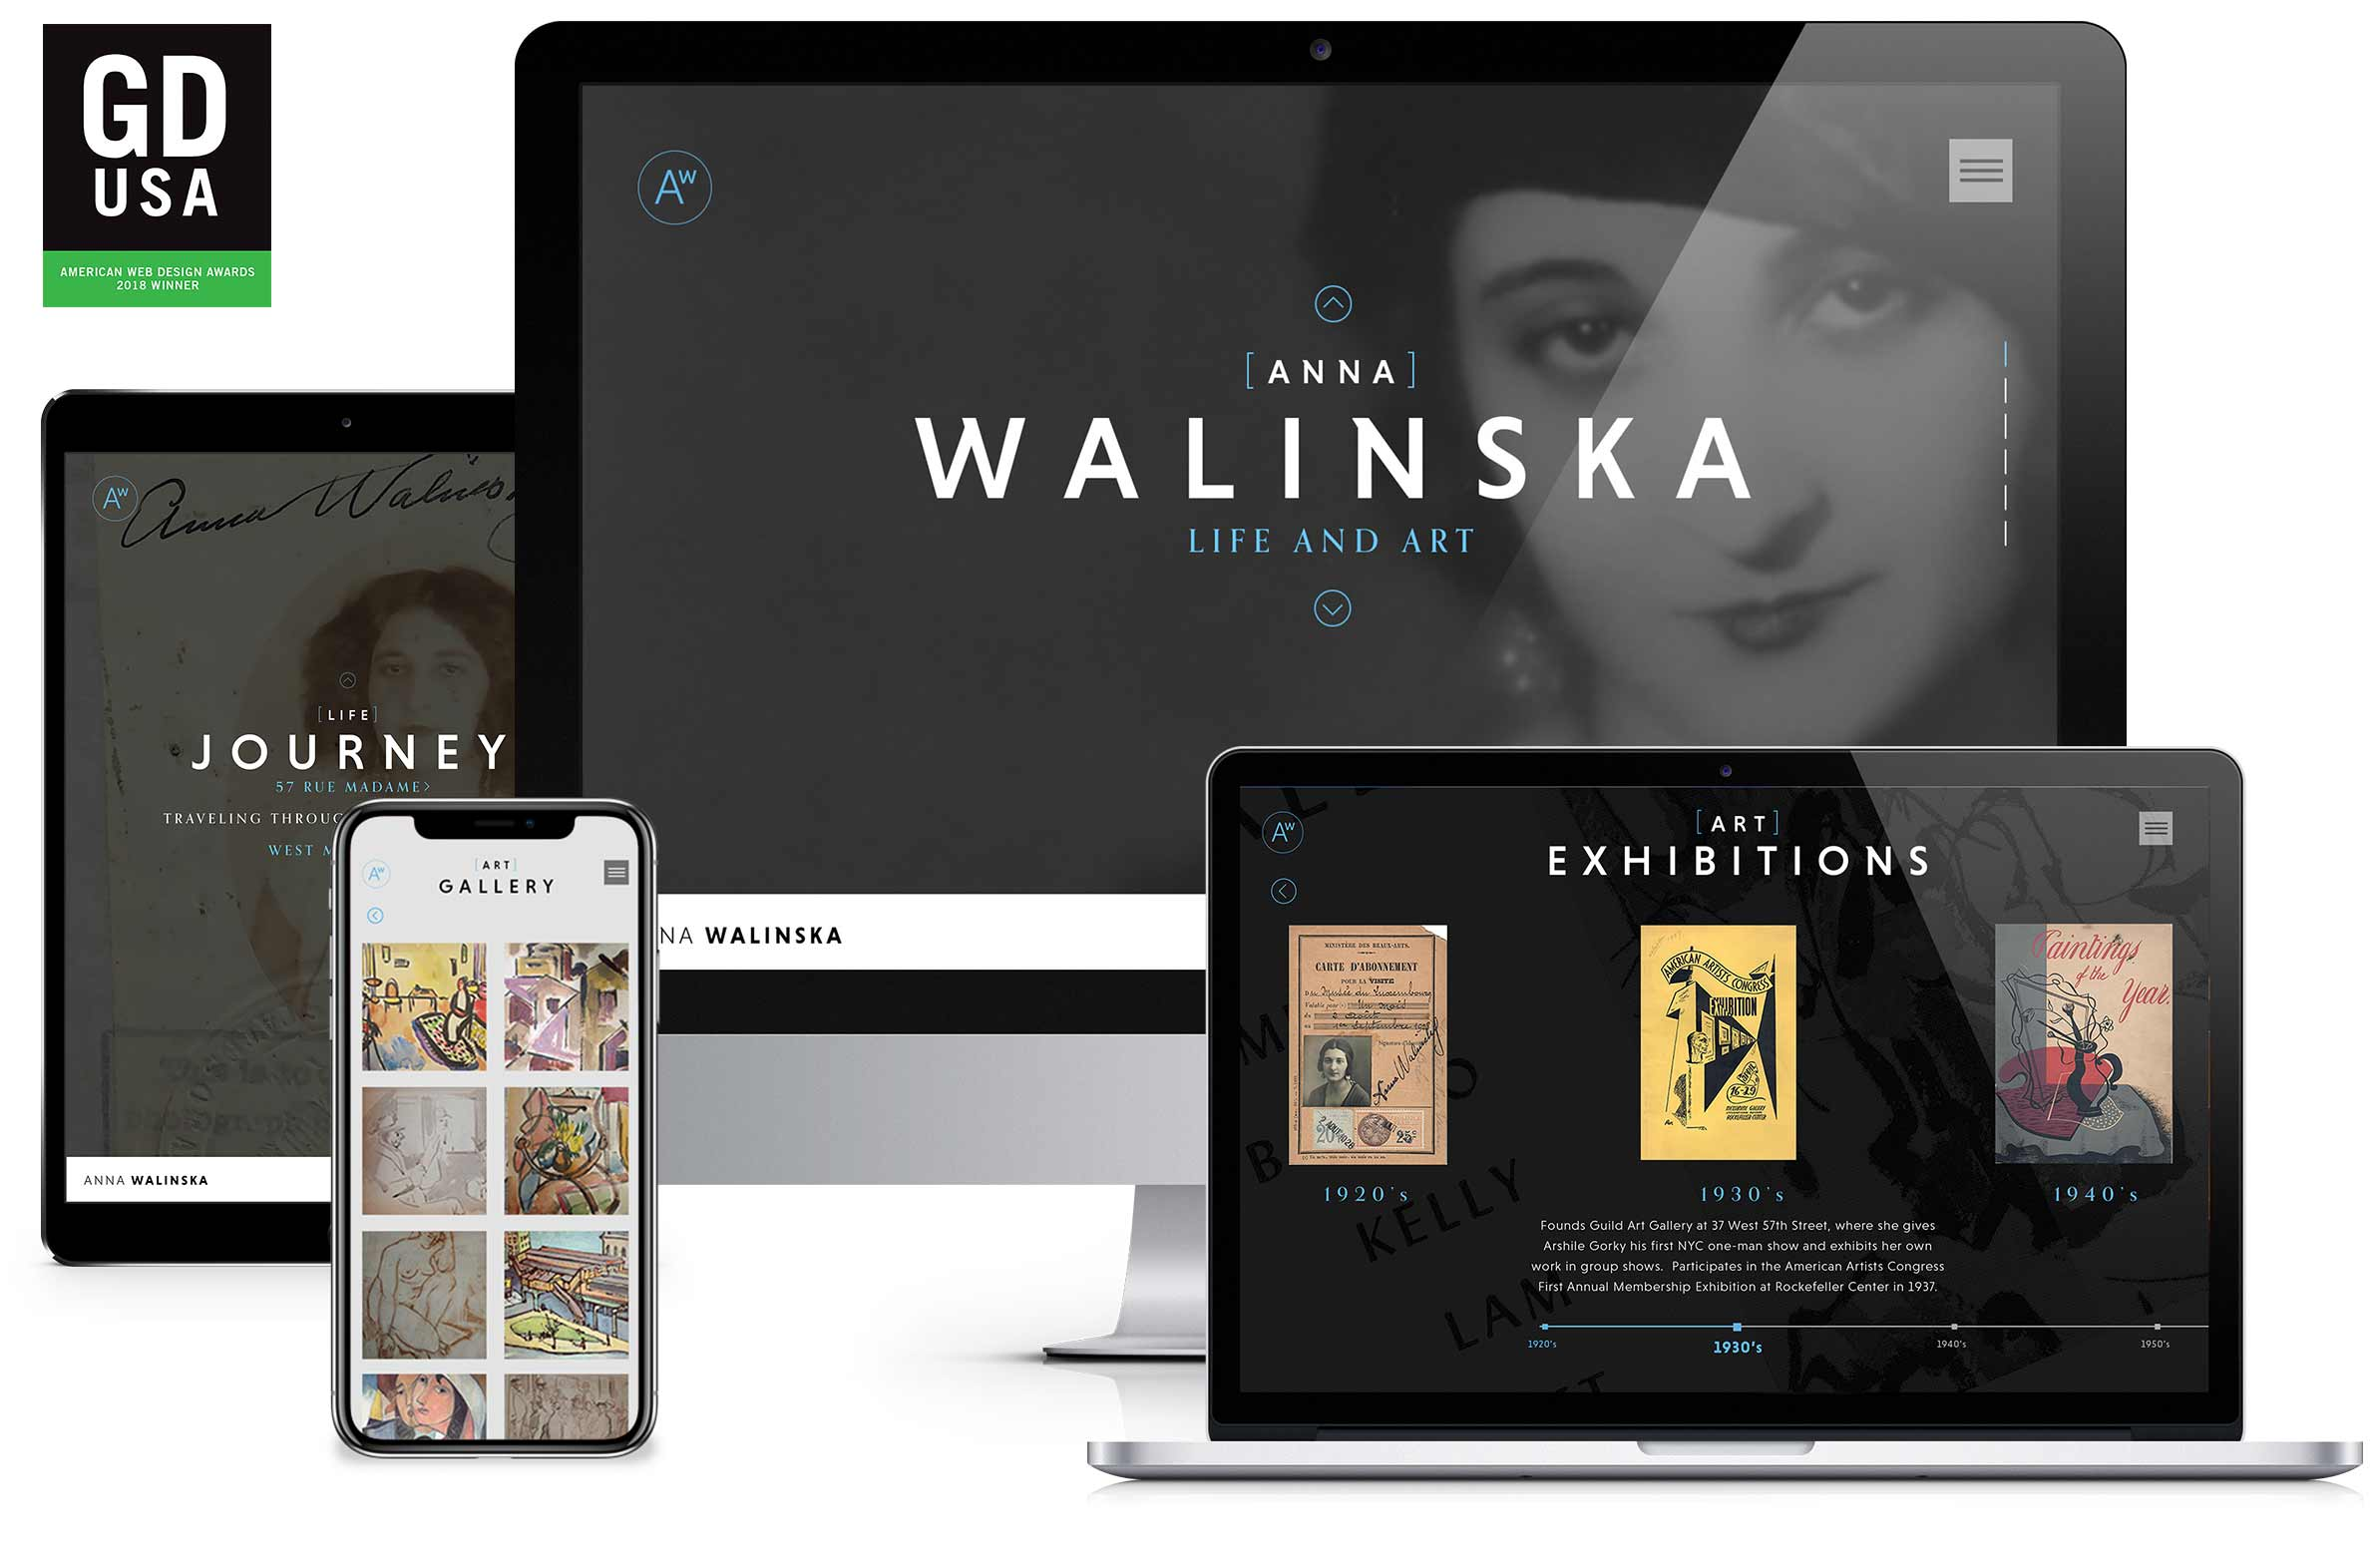 Website design and branding for Artist Anna Walinska – 2018 Graphic Design USA web design winner